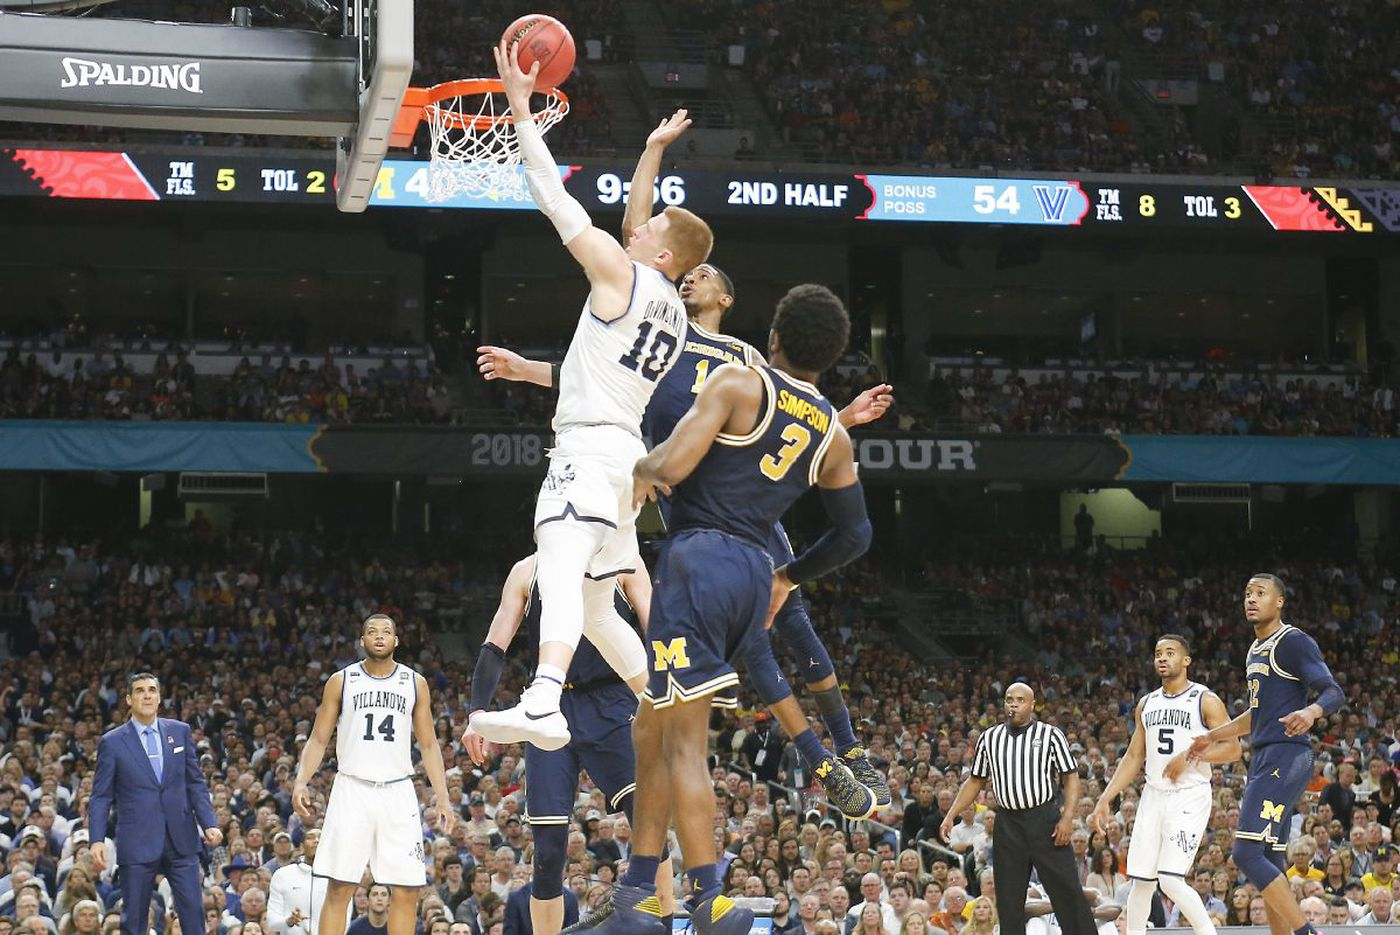 Villanova's Donte DiVincenzo is NCAA championship game star with record 31 points | Marcus Hayes